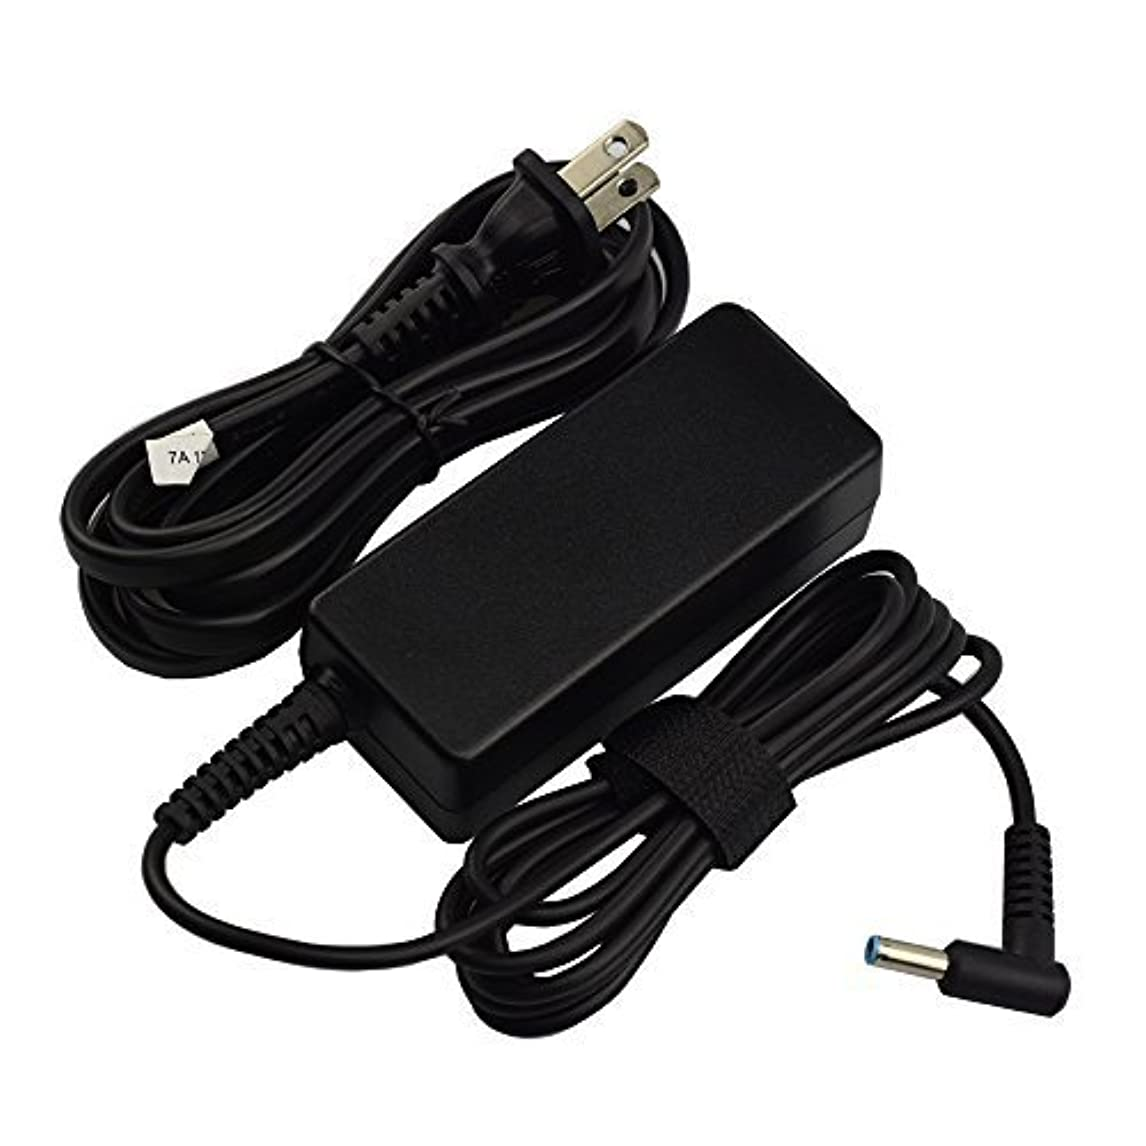 45W Charger Power Supply Cord Adapter Fit for HP HD 15-f233wm 15 15-bs113dx 15-r015dx 15-r018dx 15-r011dx 15-r017dx 15-r263dx 15-r210dx Laptop Computer pnofs24921218837